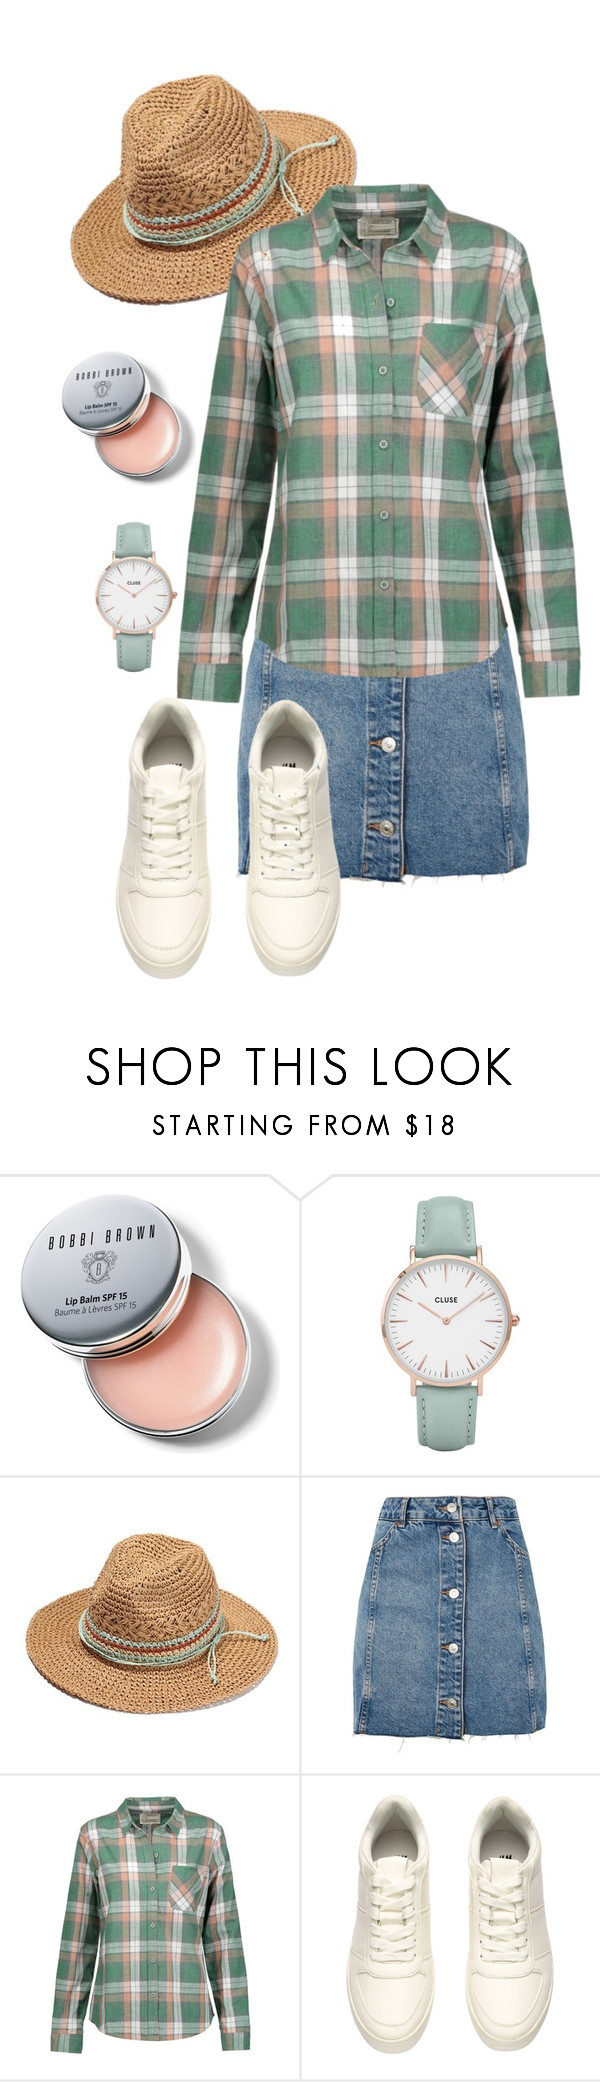 """""""backyard babe"""" by deliag ❤ liked on Polyvore featuring Bobbi Brown Cosmetics, CLUSE, Topshop, Current/Elliott and H&M"""